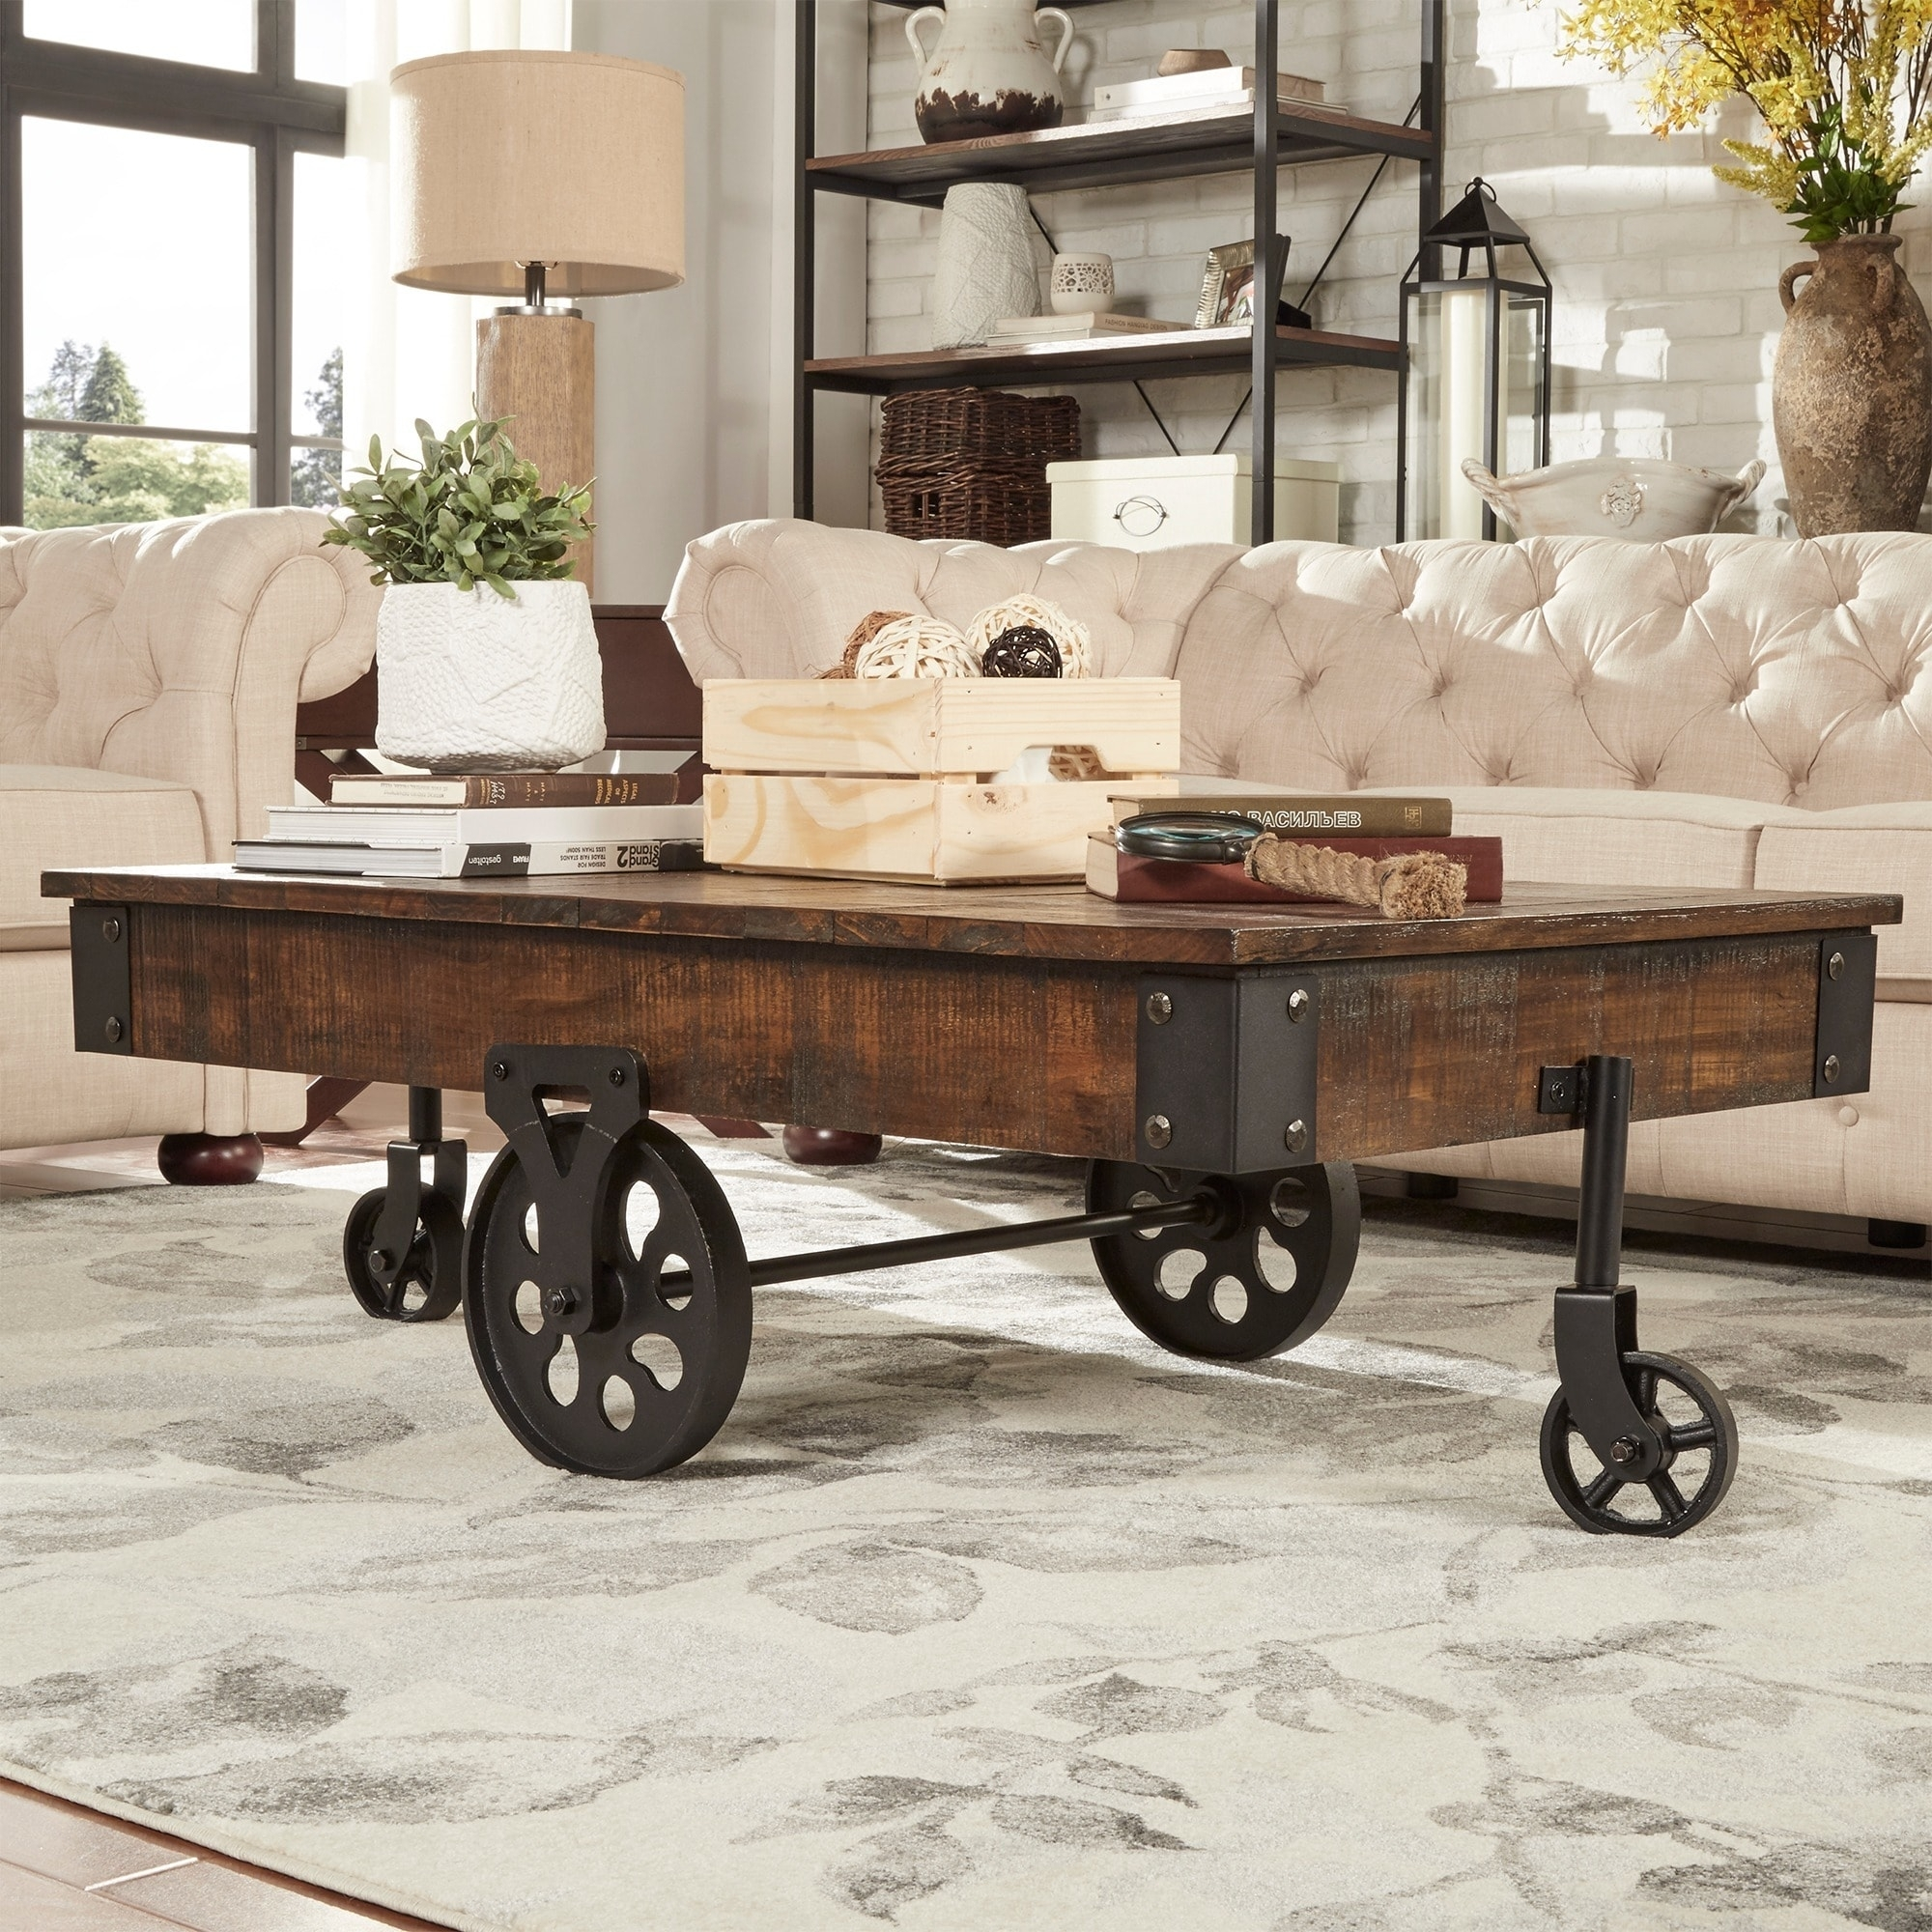 Shop Myra Vintage Industrial Modern Rustic 47 Inch Coffee Table Intended For Modern Rustic Coffee Tables (View 13 of 30)